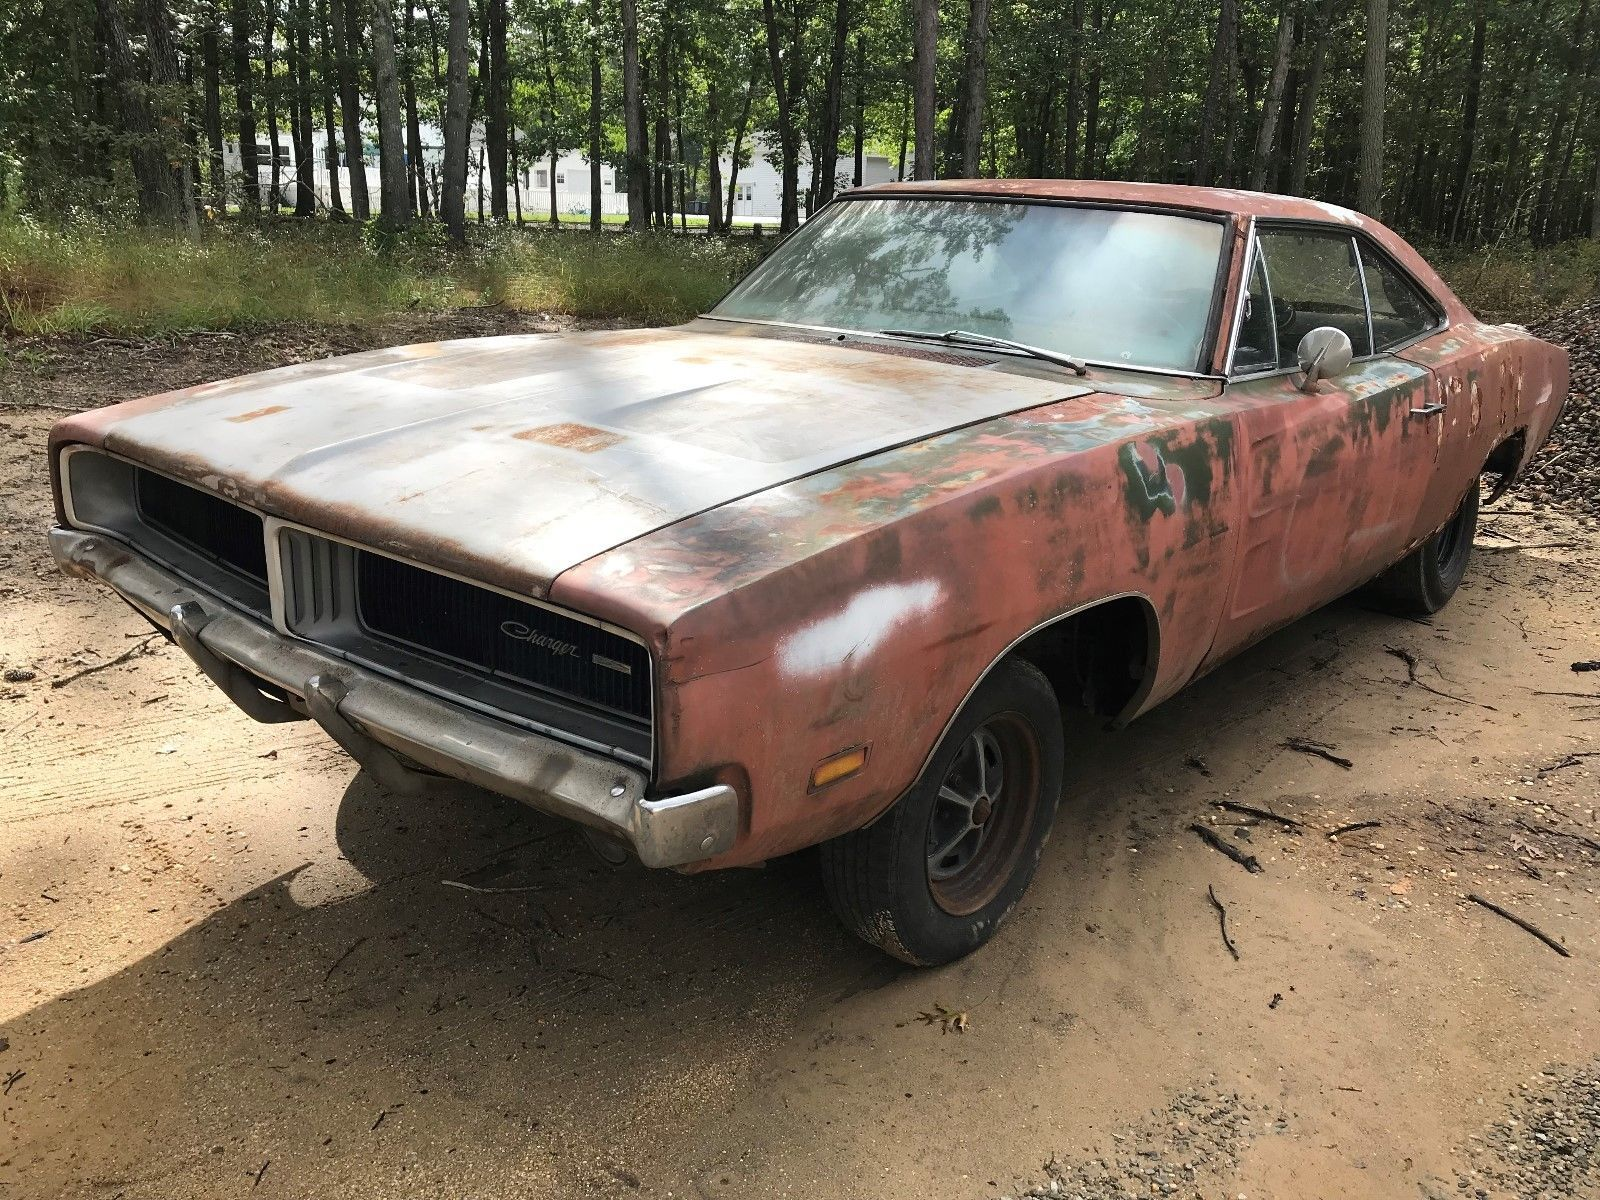 Solid 1969 Dodge Charger Project 1969 Dodge Charger Dodge Charger Project Cars For Sale